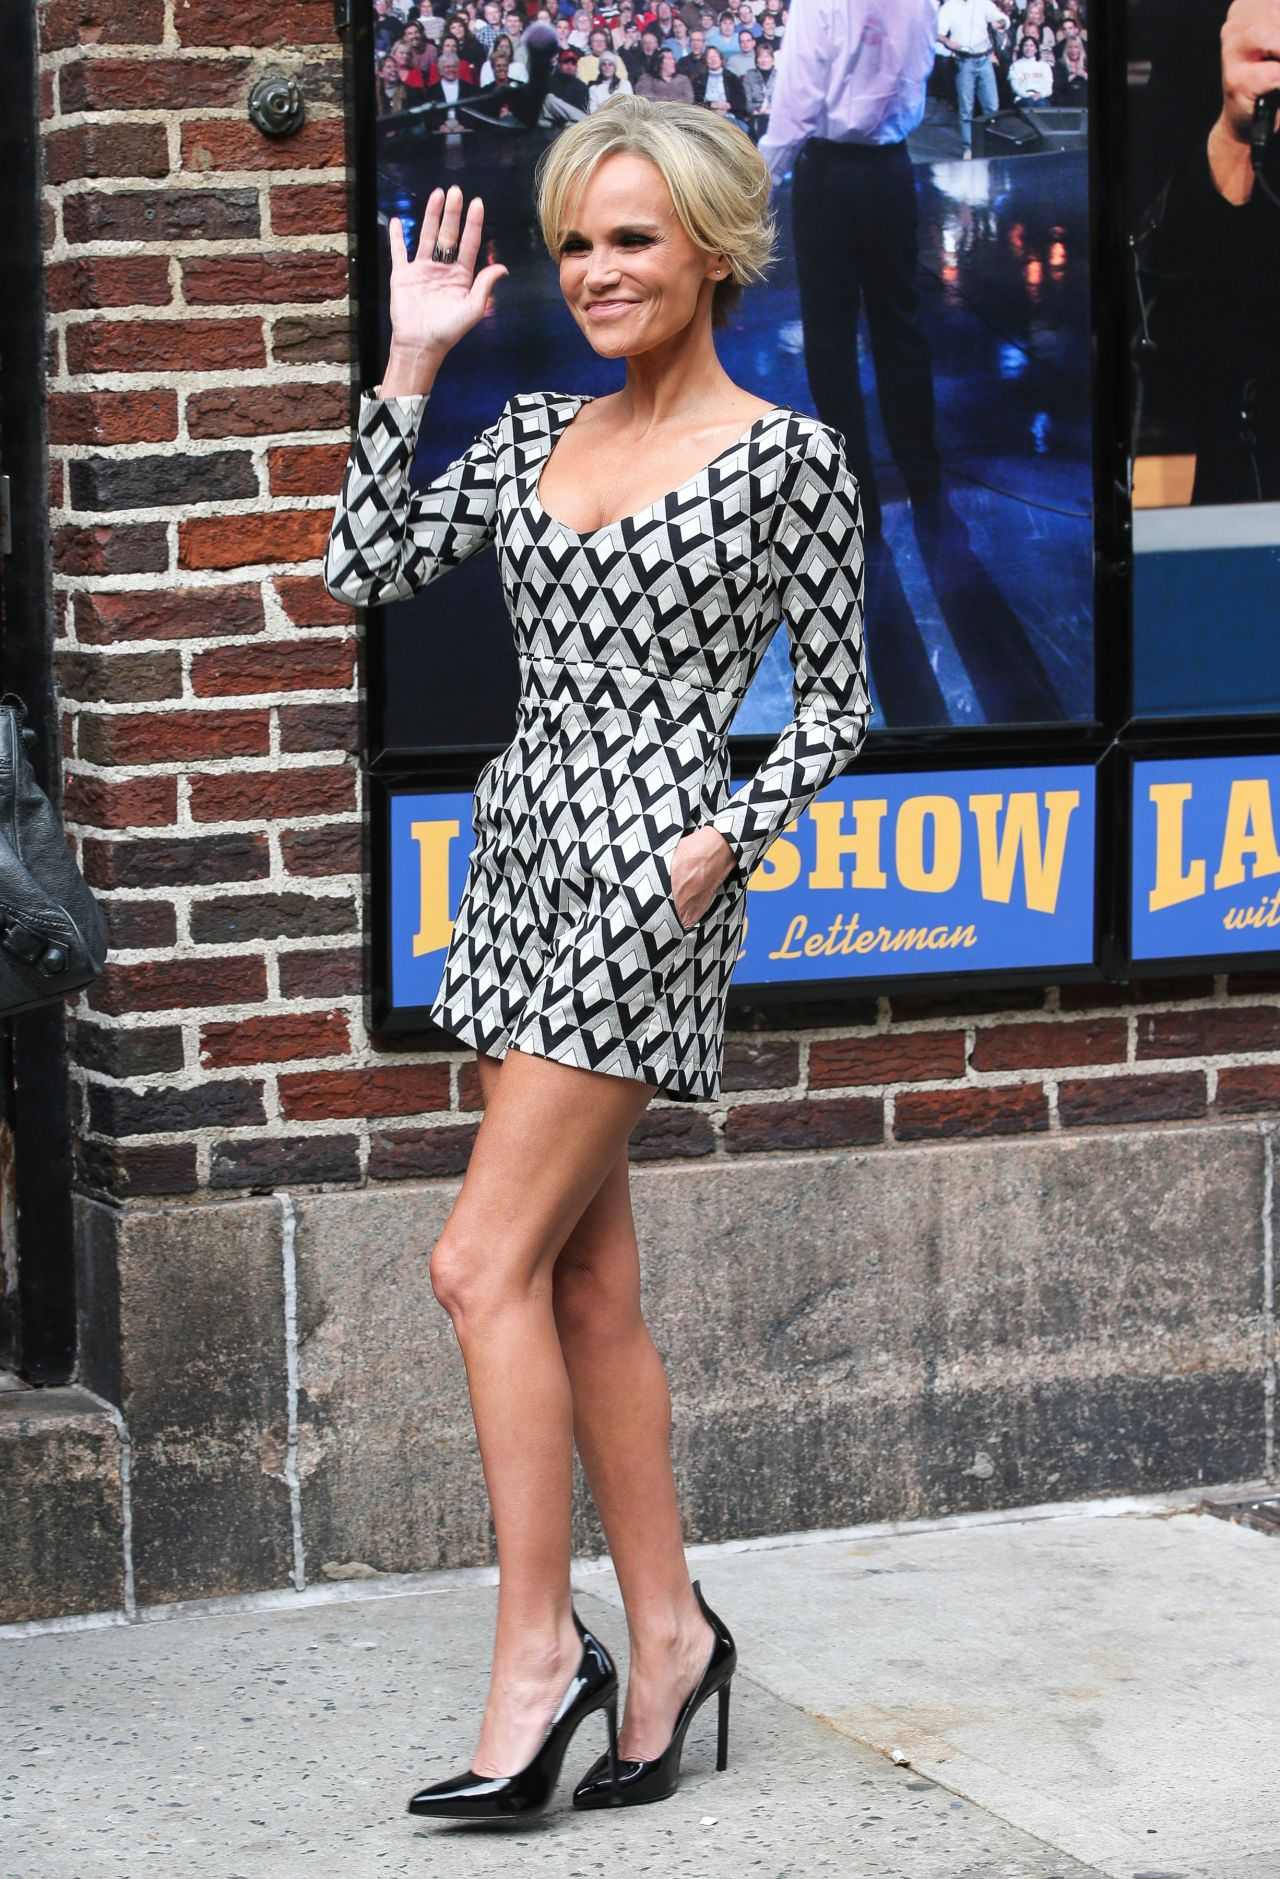 Kristin Chenoweth - After David Letterman Show in New York City - April 2014